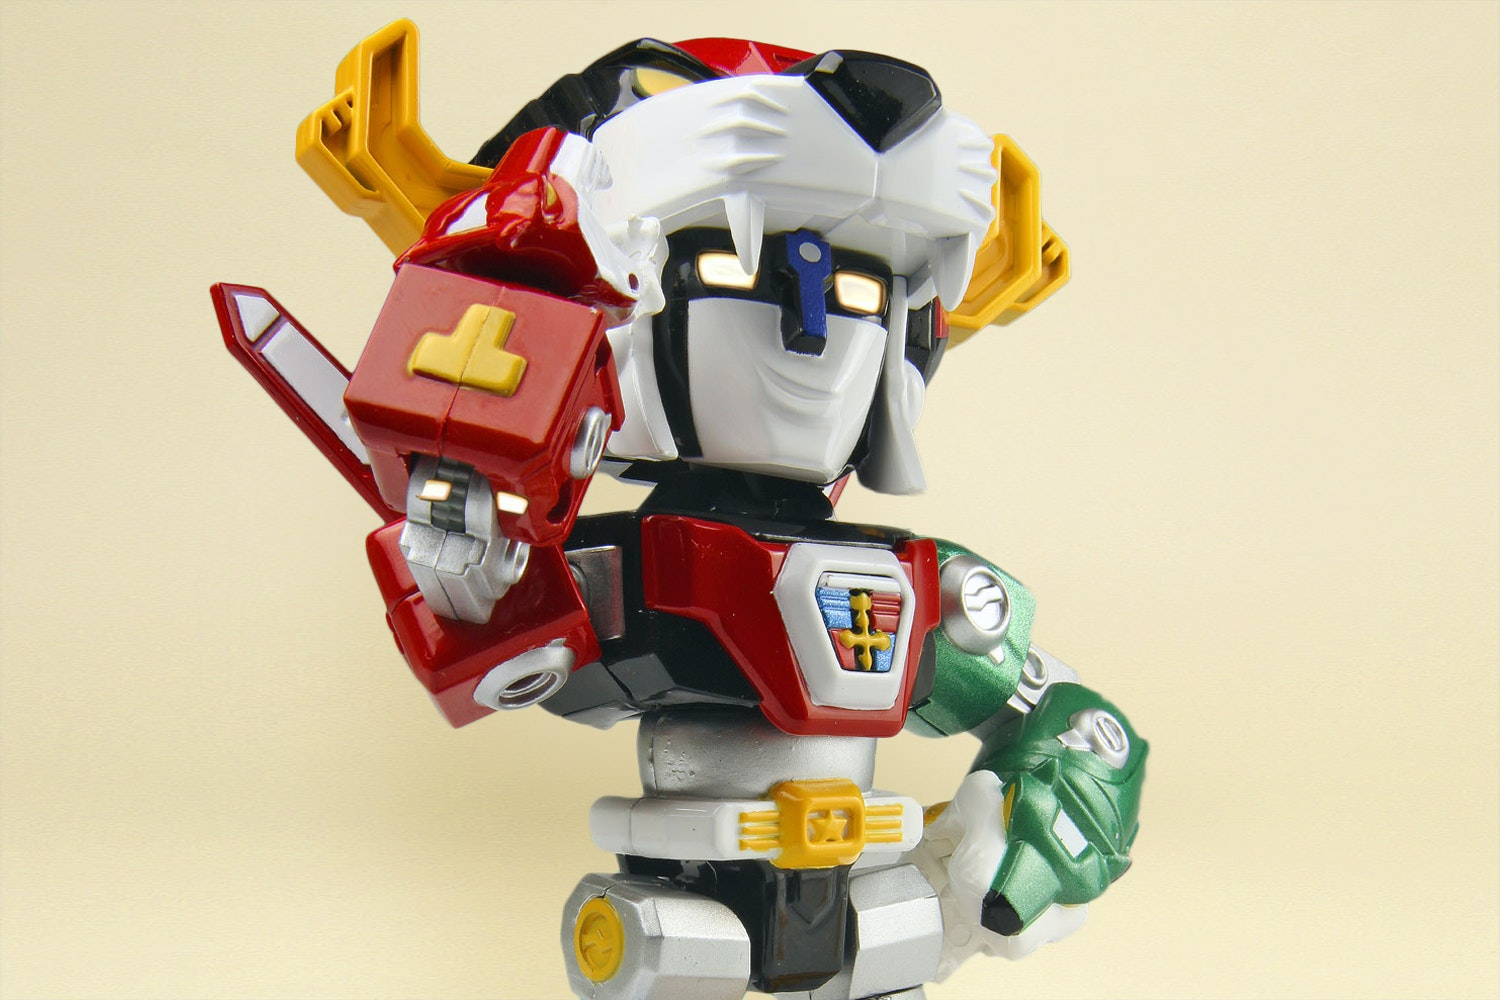 Toynami Voltron Super Poseable Action Figure